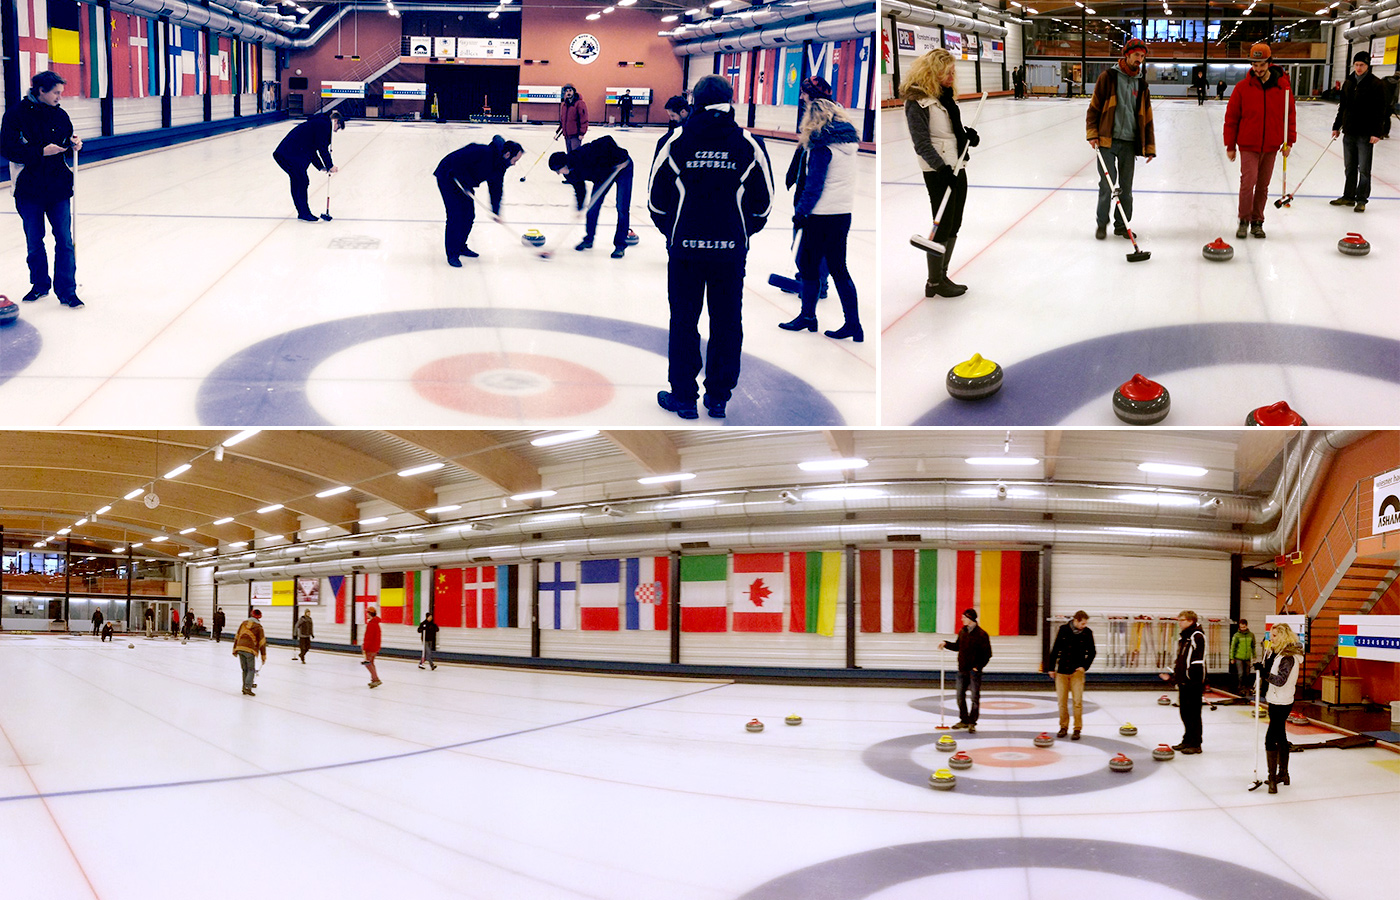 coex_curling_1xx.png